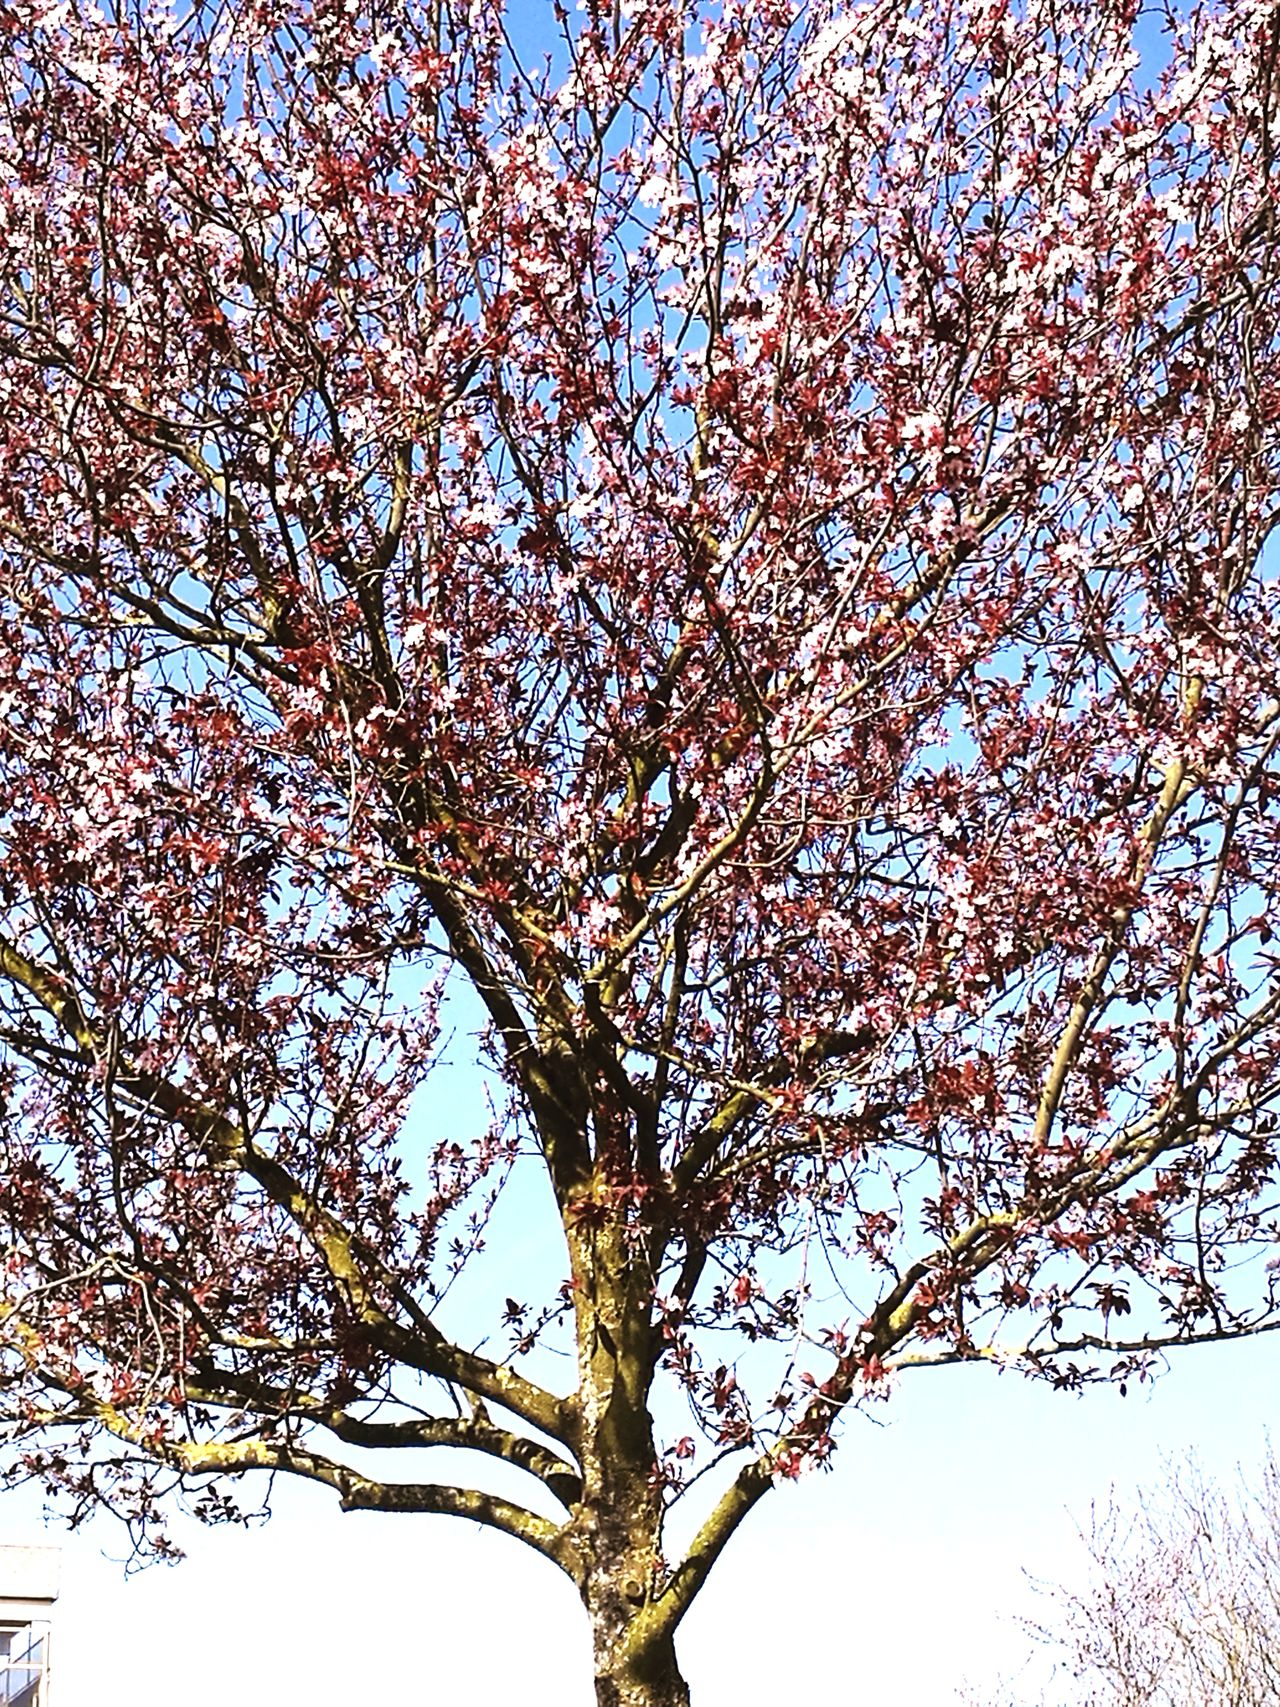 Low Angle View Tree Sky No People Nature Outdoors Branch Close-up Day Backgrounds Beauty In Nature Animal Themes Millennial Pink Huawei P9 Plus Photography Made By Noesie